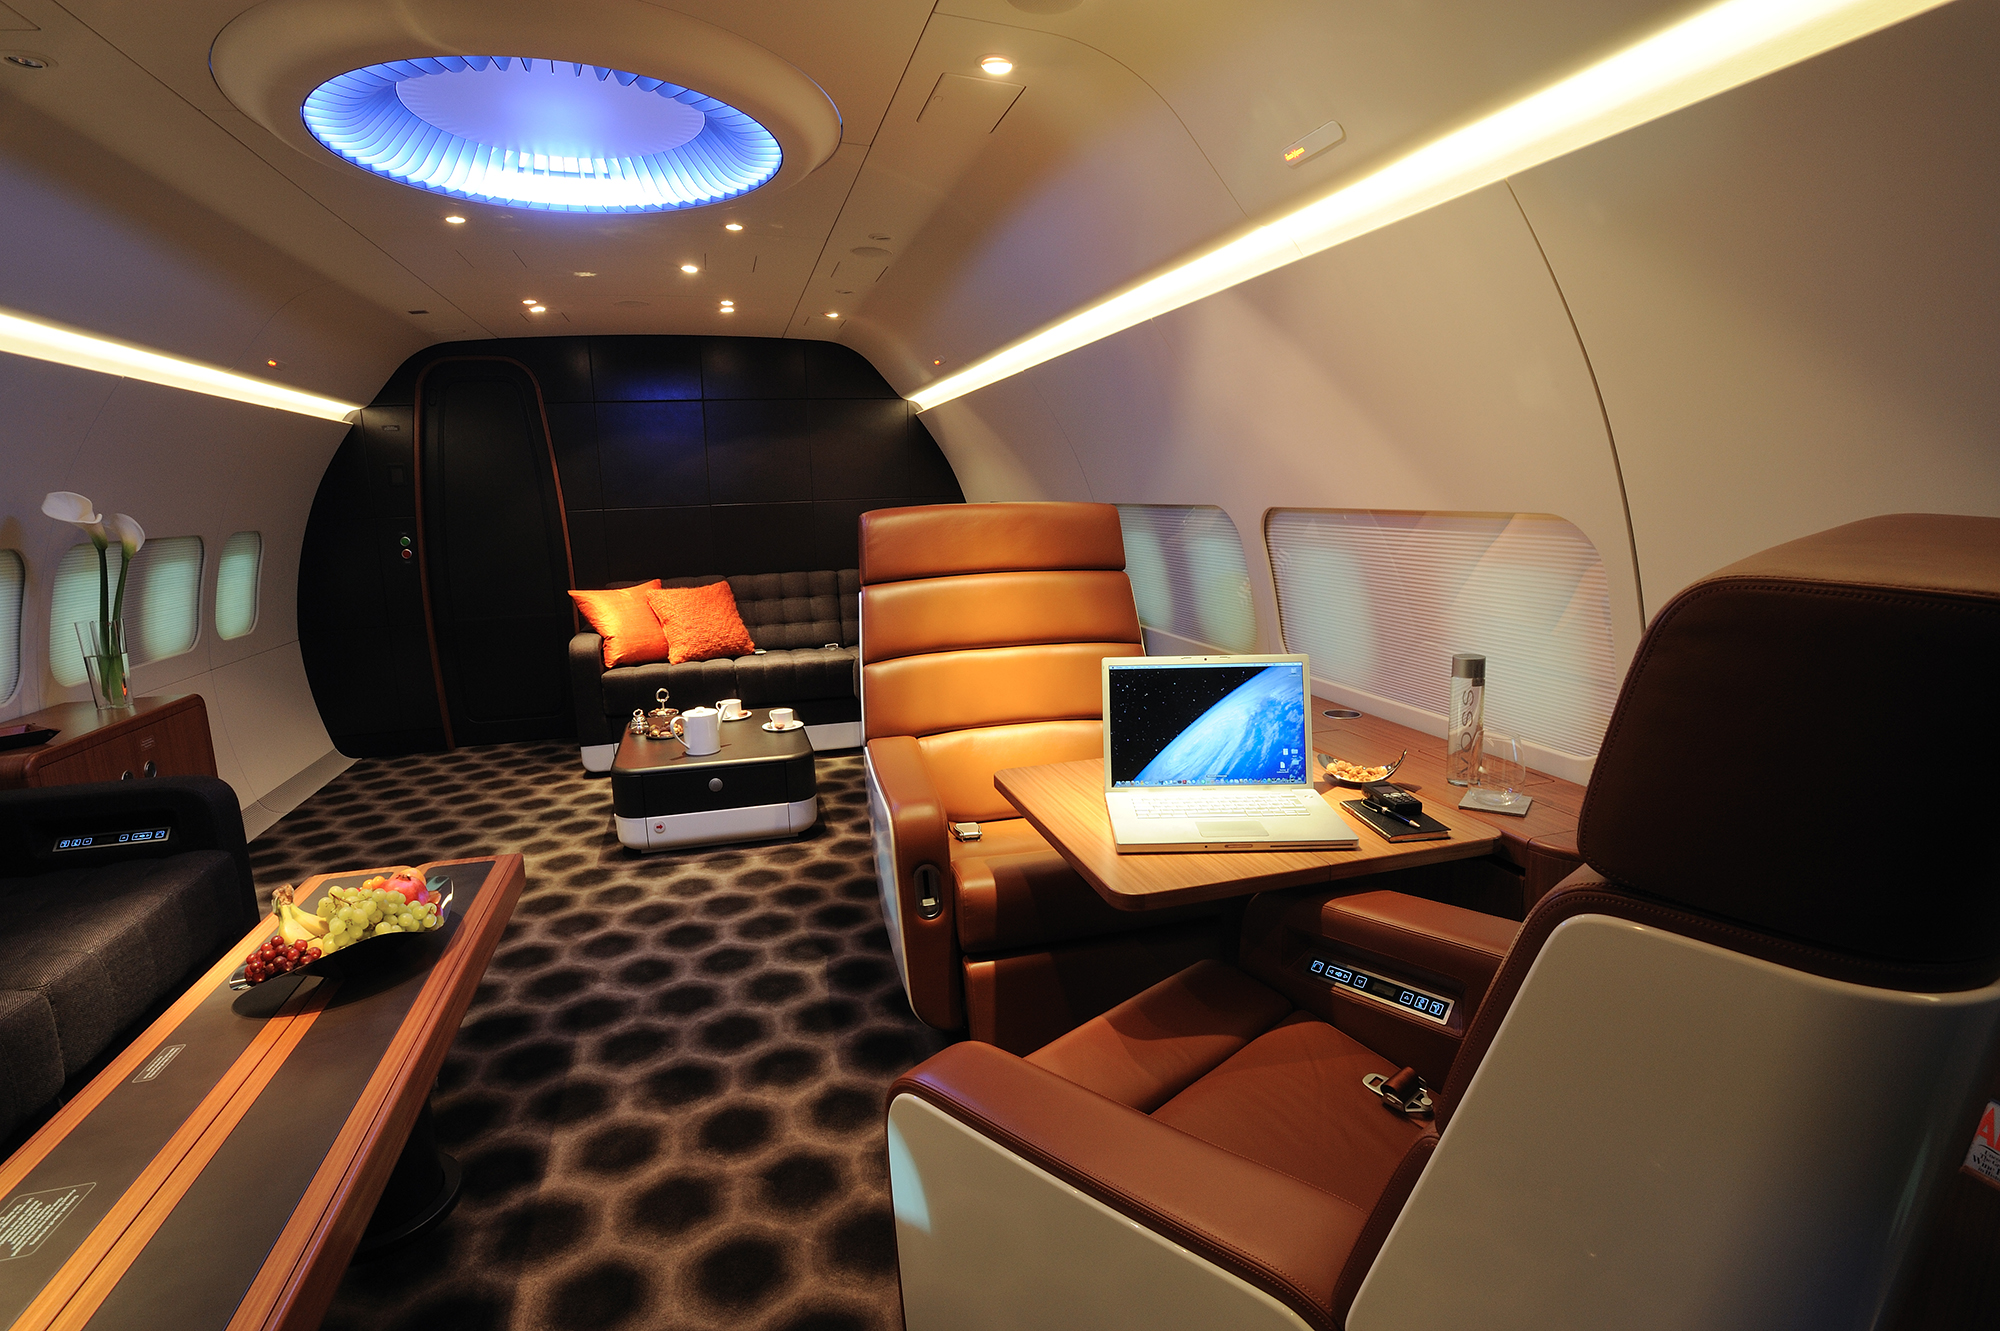 Réalisation de Marc Newson. Photographie : Andre Heeger, courtesy of Freestream Aircraft Limited.